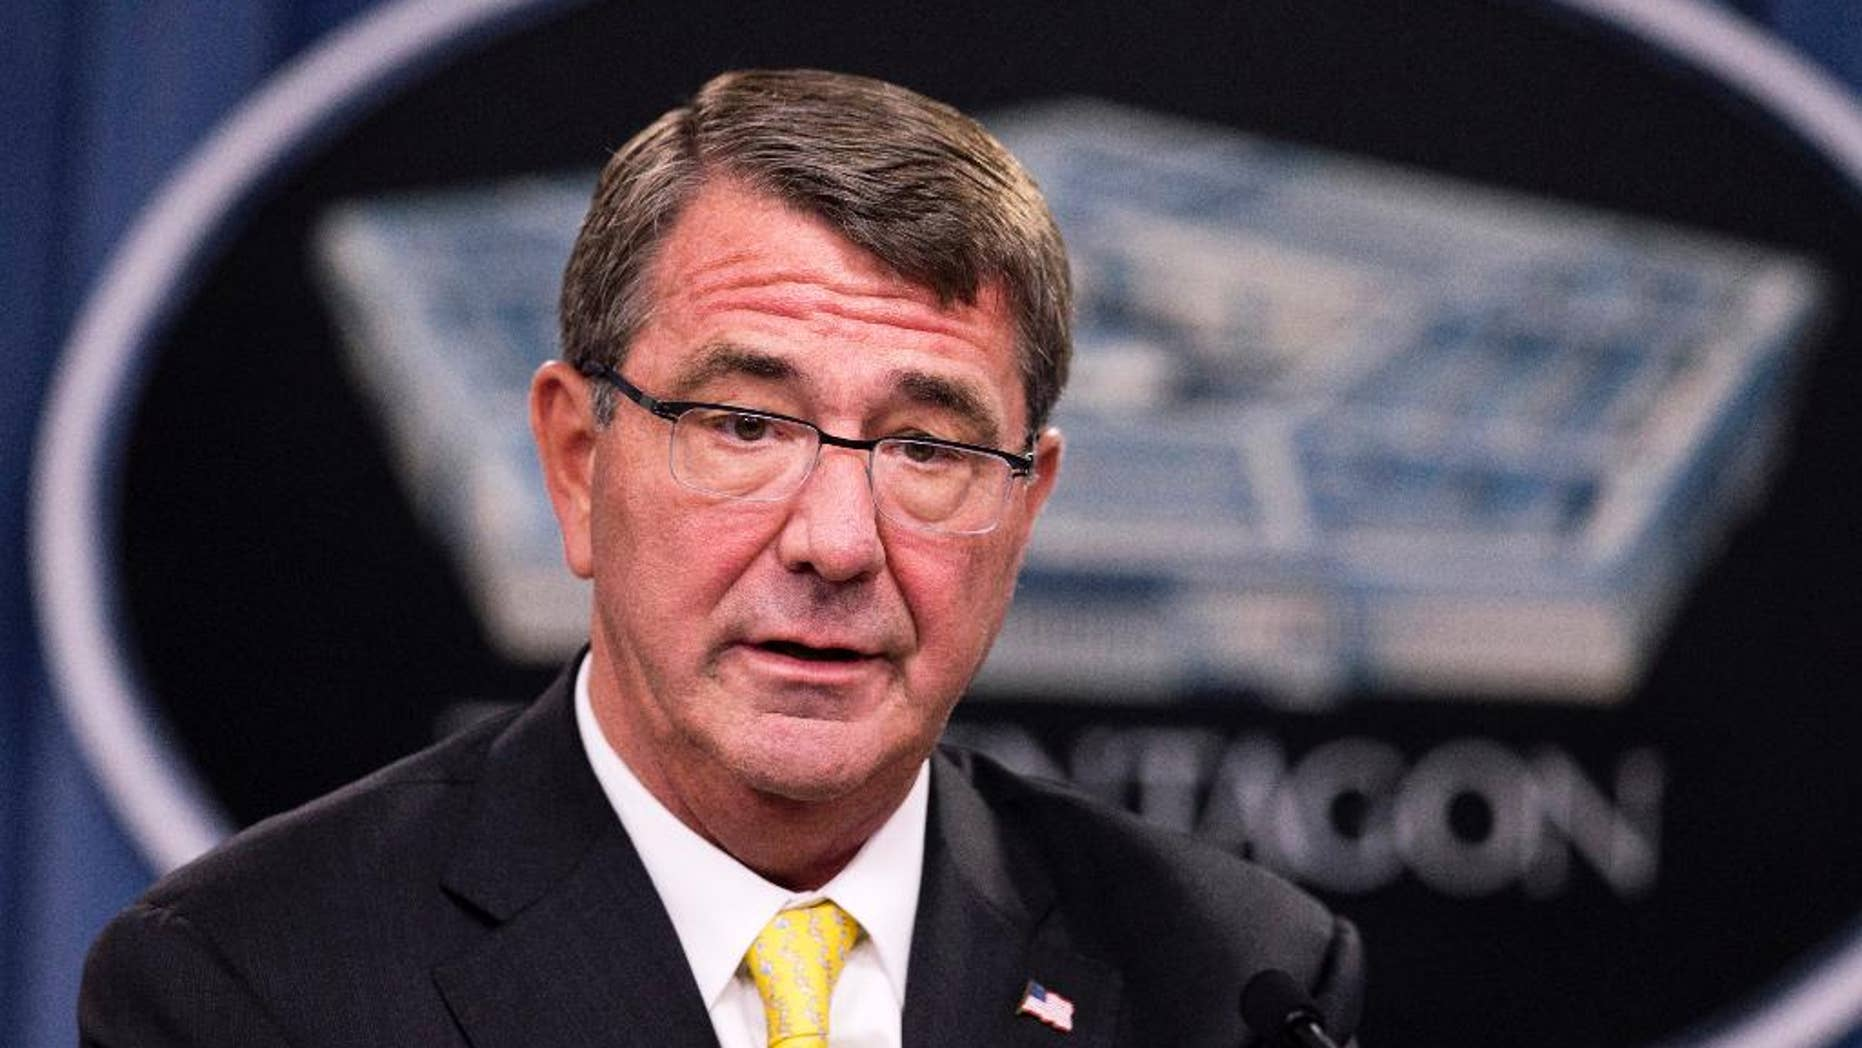 FILE - In this Aug. 20, 2015 file photo, Defense Secretary Ash Carter speaks during a news conference at the Pentagon. Carter used a speech and a wide-ranging exchange with troops on social media sites Tuesday to press his agenda for change in the military, signaling his early support for expanded maternity leave, women serving in combat jobs and greater flexibility pay, promotions and benefits.  (AP Photo/Manuel Balce Ceneta, File)